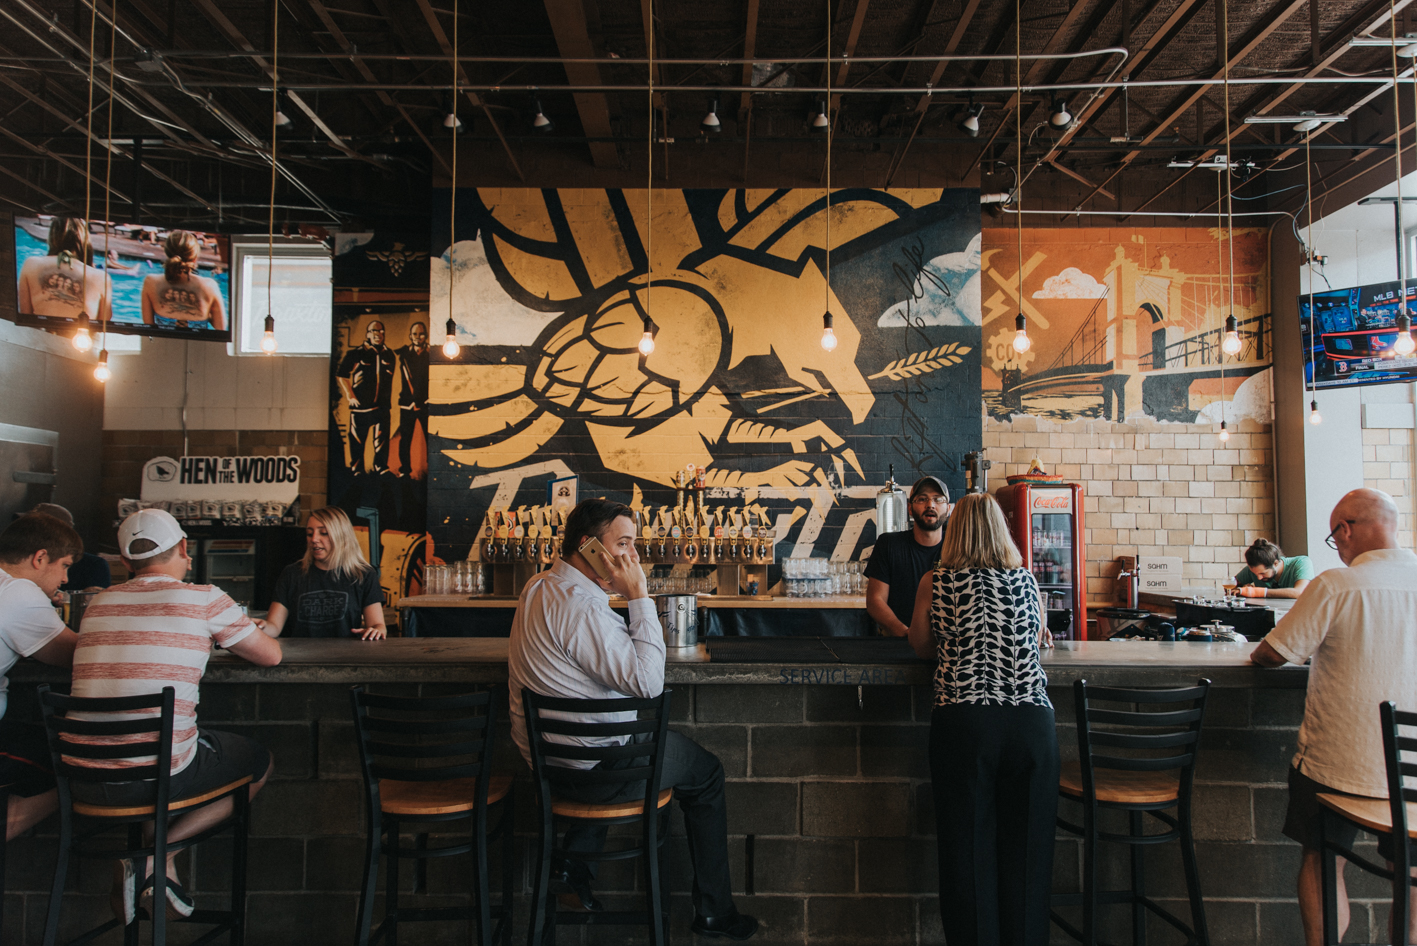 BAR: Braxton Brewery / NEIGHBORHOOD: Covington  / ALLURE: The beer is brewed on site, so it's extra fresh, and you can bring your dog(s)! / RECOMMENDED ORDER: Summertrip (a passion fruit Berliner weirs style ale) / ADDRESS: 27 W 7th St. (41011) / IMAGE: Brianna Long // PUBLISHED 7.1.17